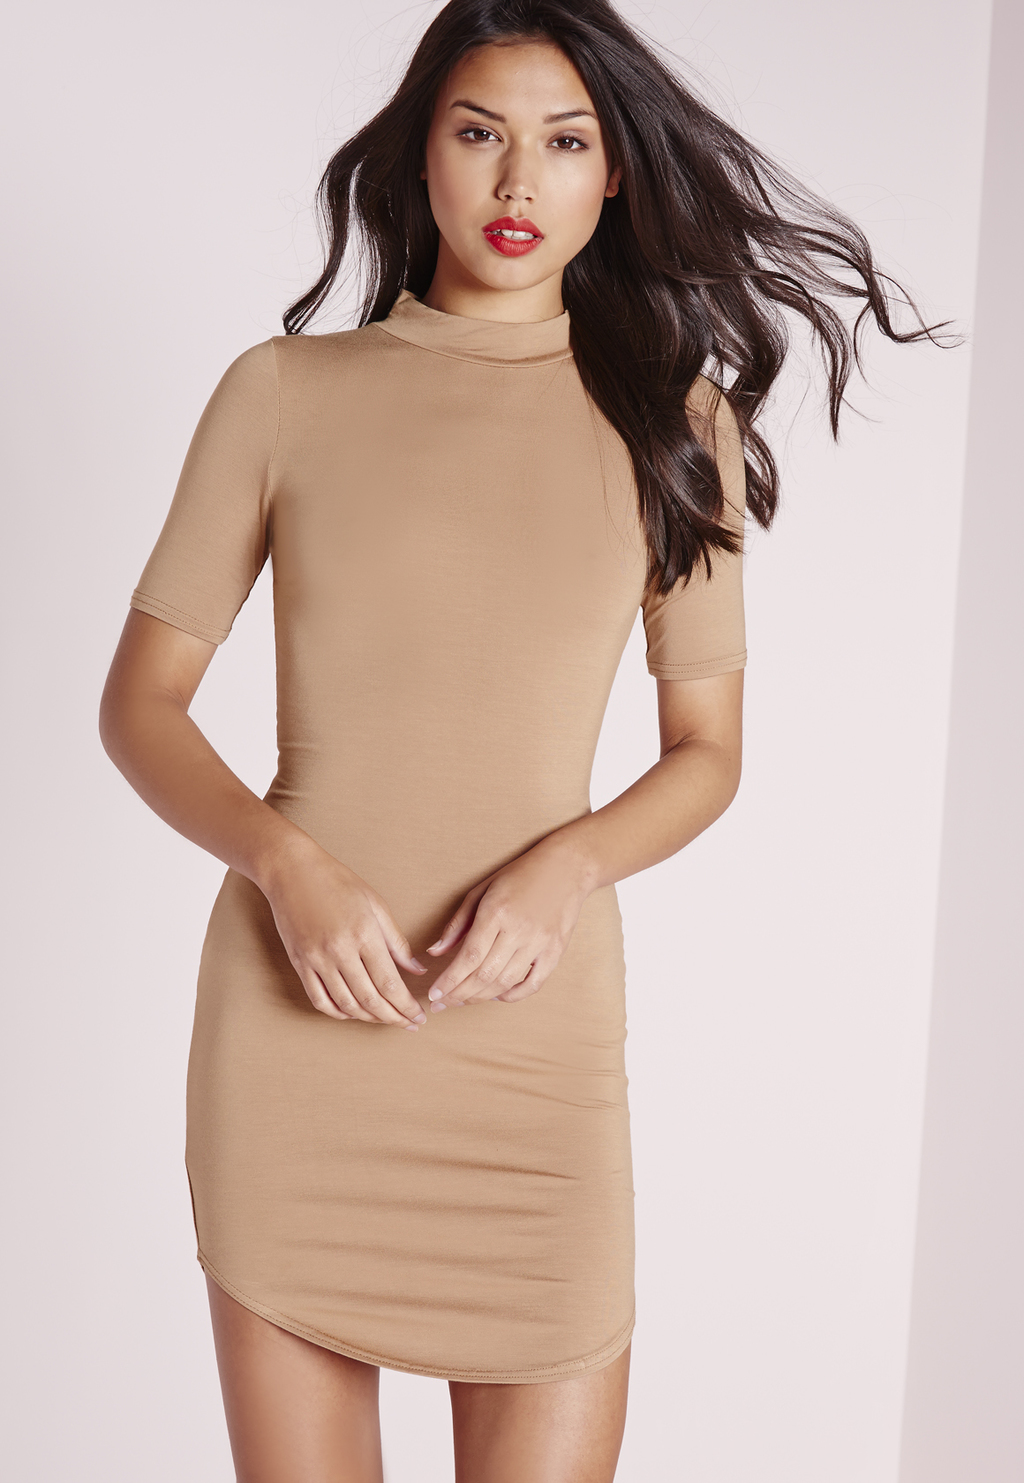 Short Sleeve Curve Hem Bodycon Dress Camel, Brown - length: mid thigh; fit: tight; pattern: plain; neckline: high neck; style: bodycon; predominant colour: camel; occasions: evening; fibres: viscose/rayon - stretch; sleeve length: short sleeve; sleeve style: standard; texture group: jersey - clingy; pattern type: fabric; season: s/s 2016; wardrobe: event